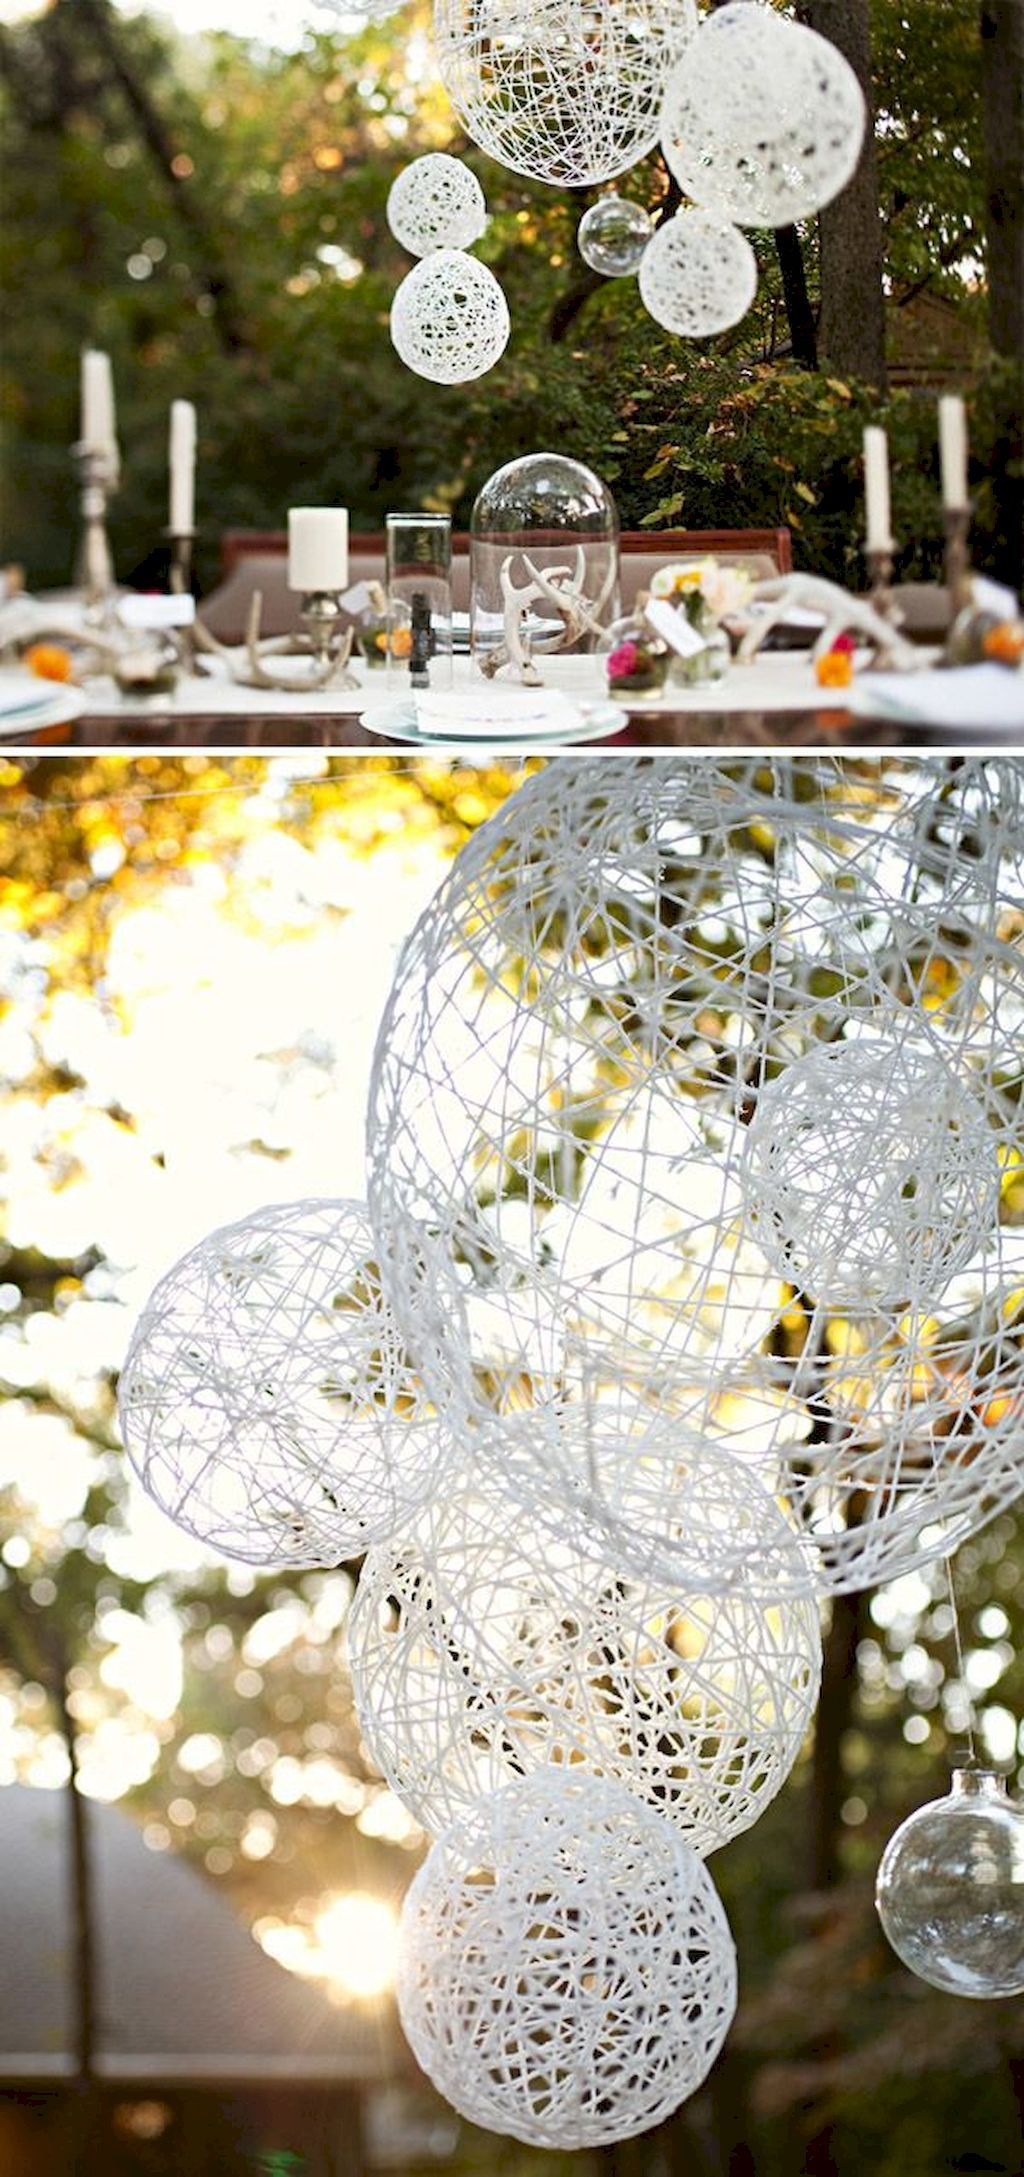 56 Inexpensive Backyard Wedding Decor Ideas | Wedding, Weddings and ...